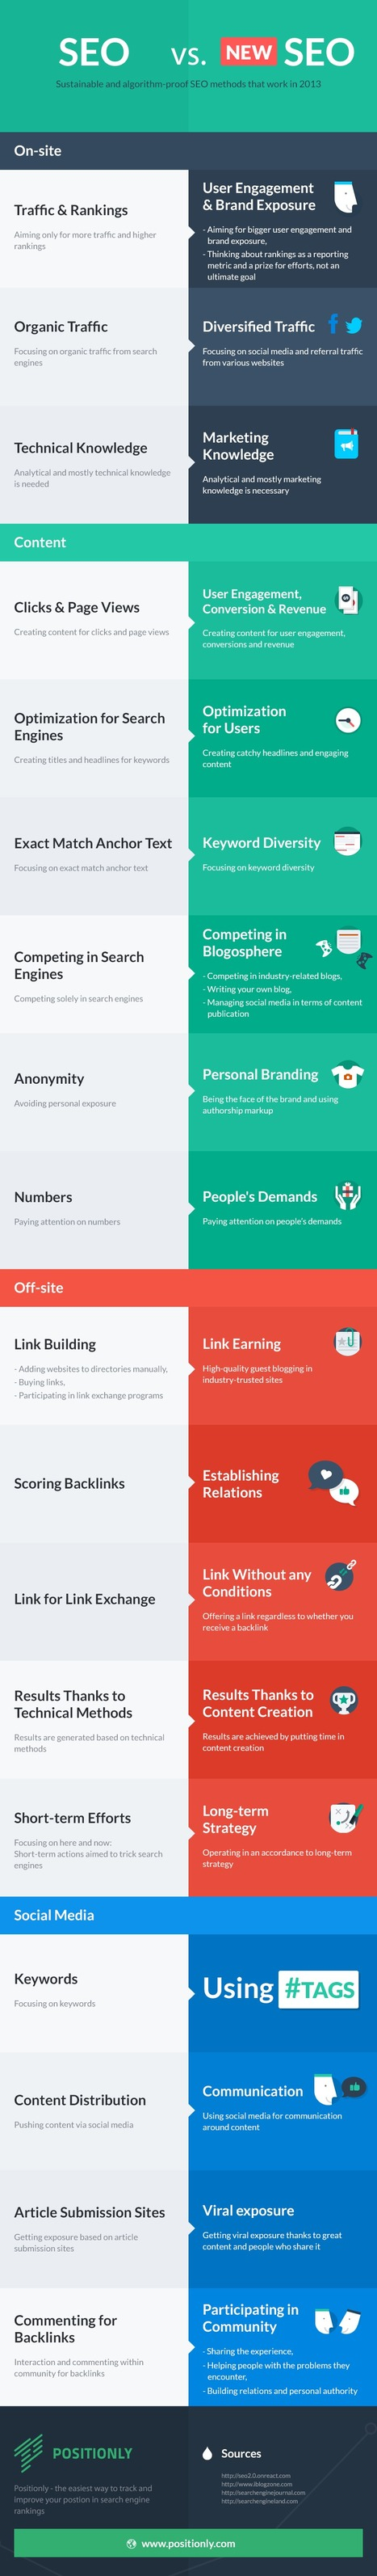 Social Media & Sustainable SEO: Infographic | Internet Marketing | Scoop.it